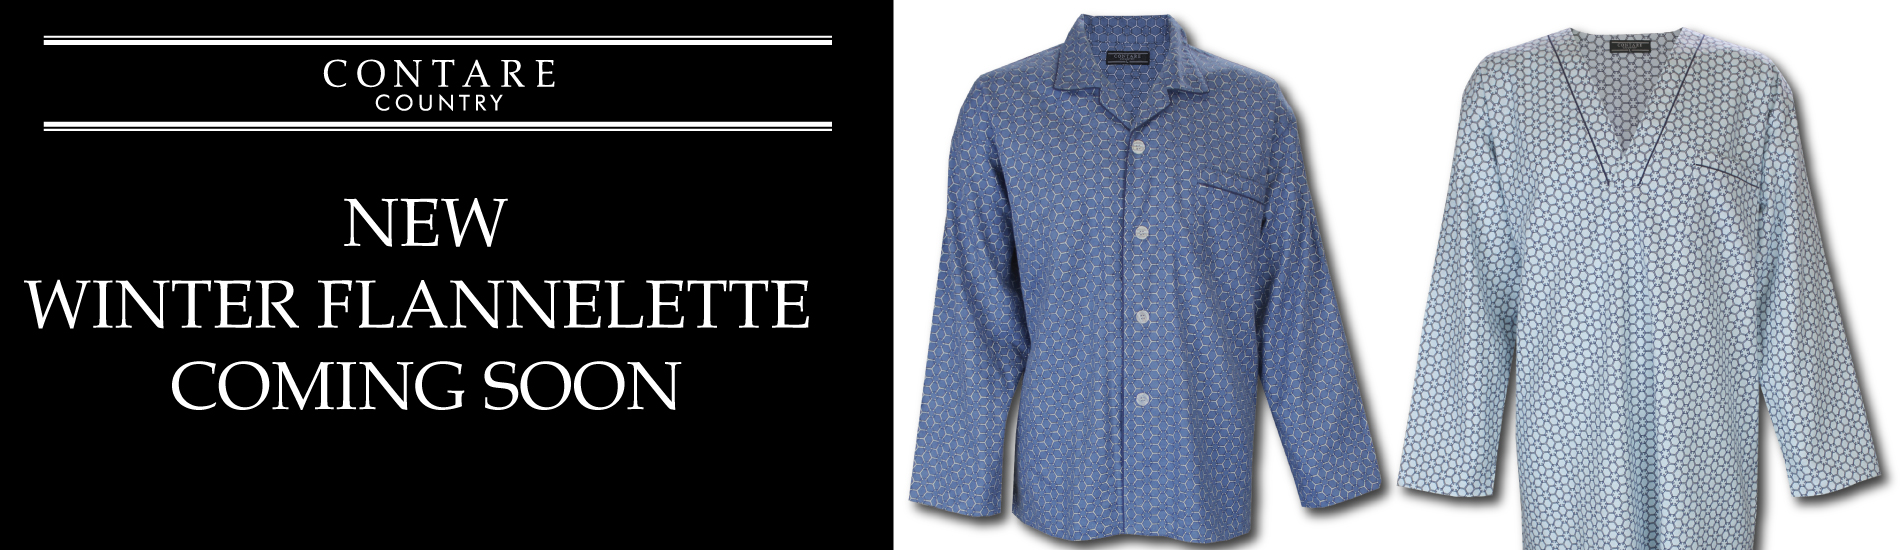 Contare-Country-Flannelette-2021—COMING-SOON